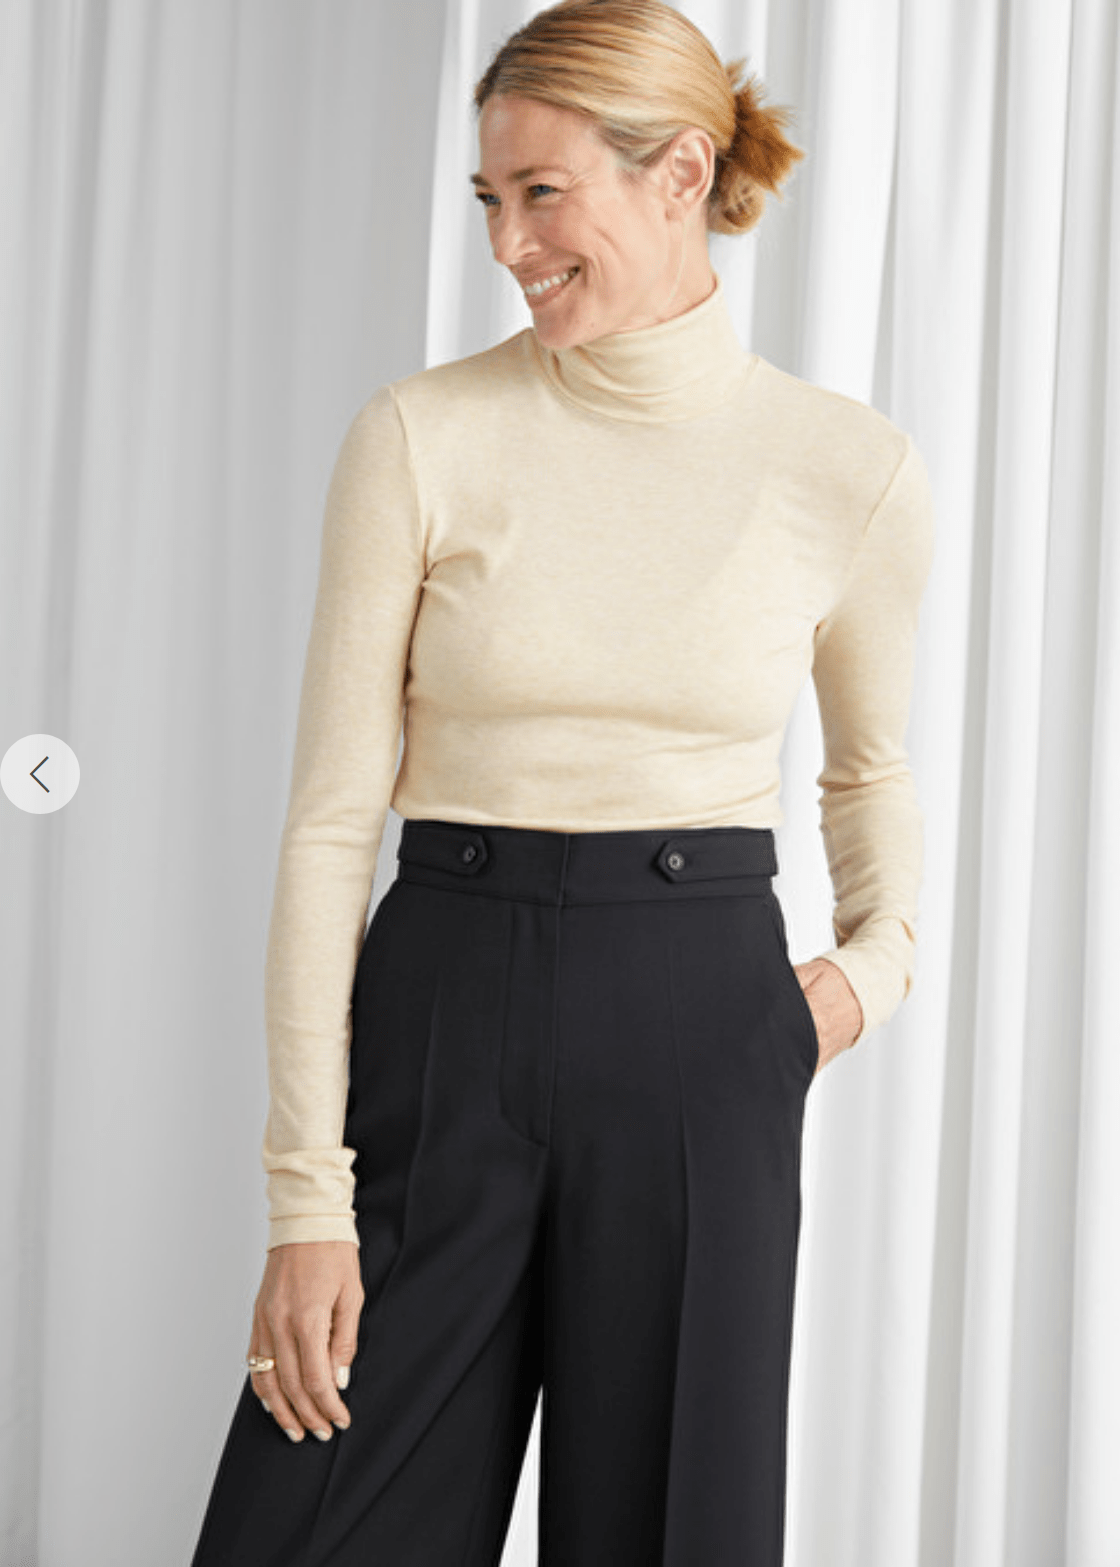 Stockholm Atelier Fitted Lyocell Ribbed Turtleneck - MGworld